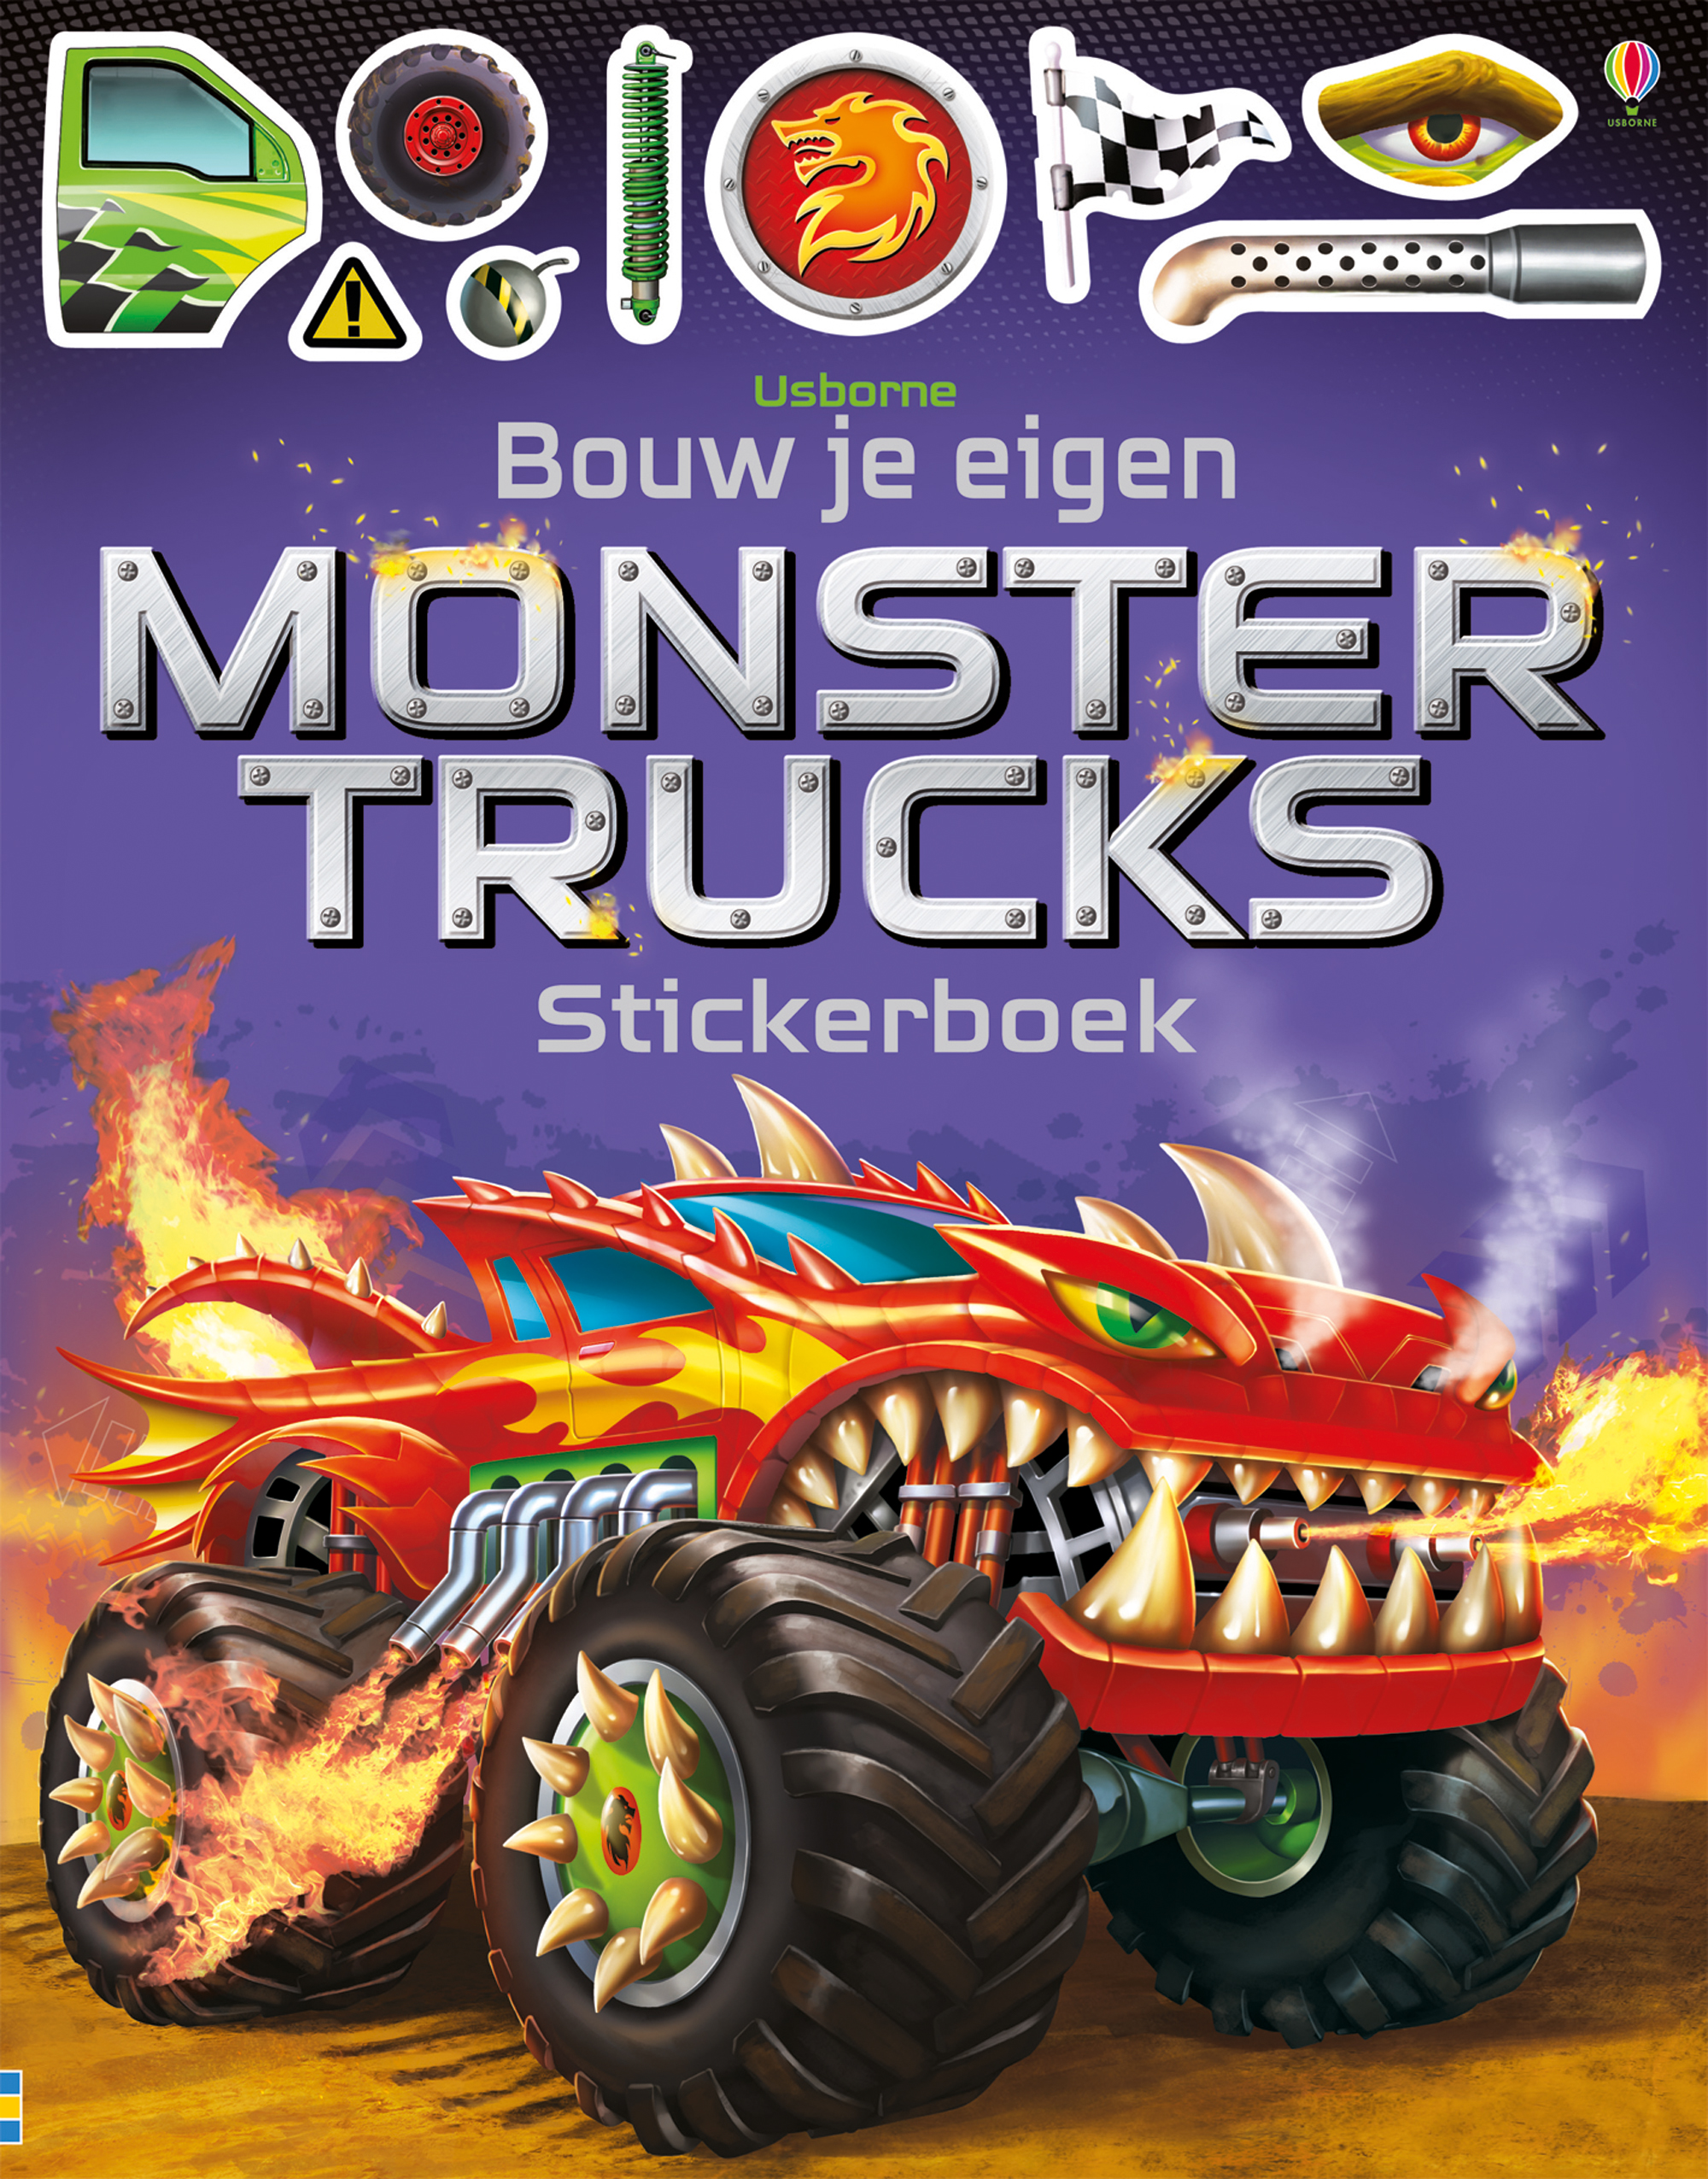 Bouw je eigen monstertrucks – Stickerboek